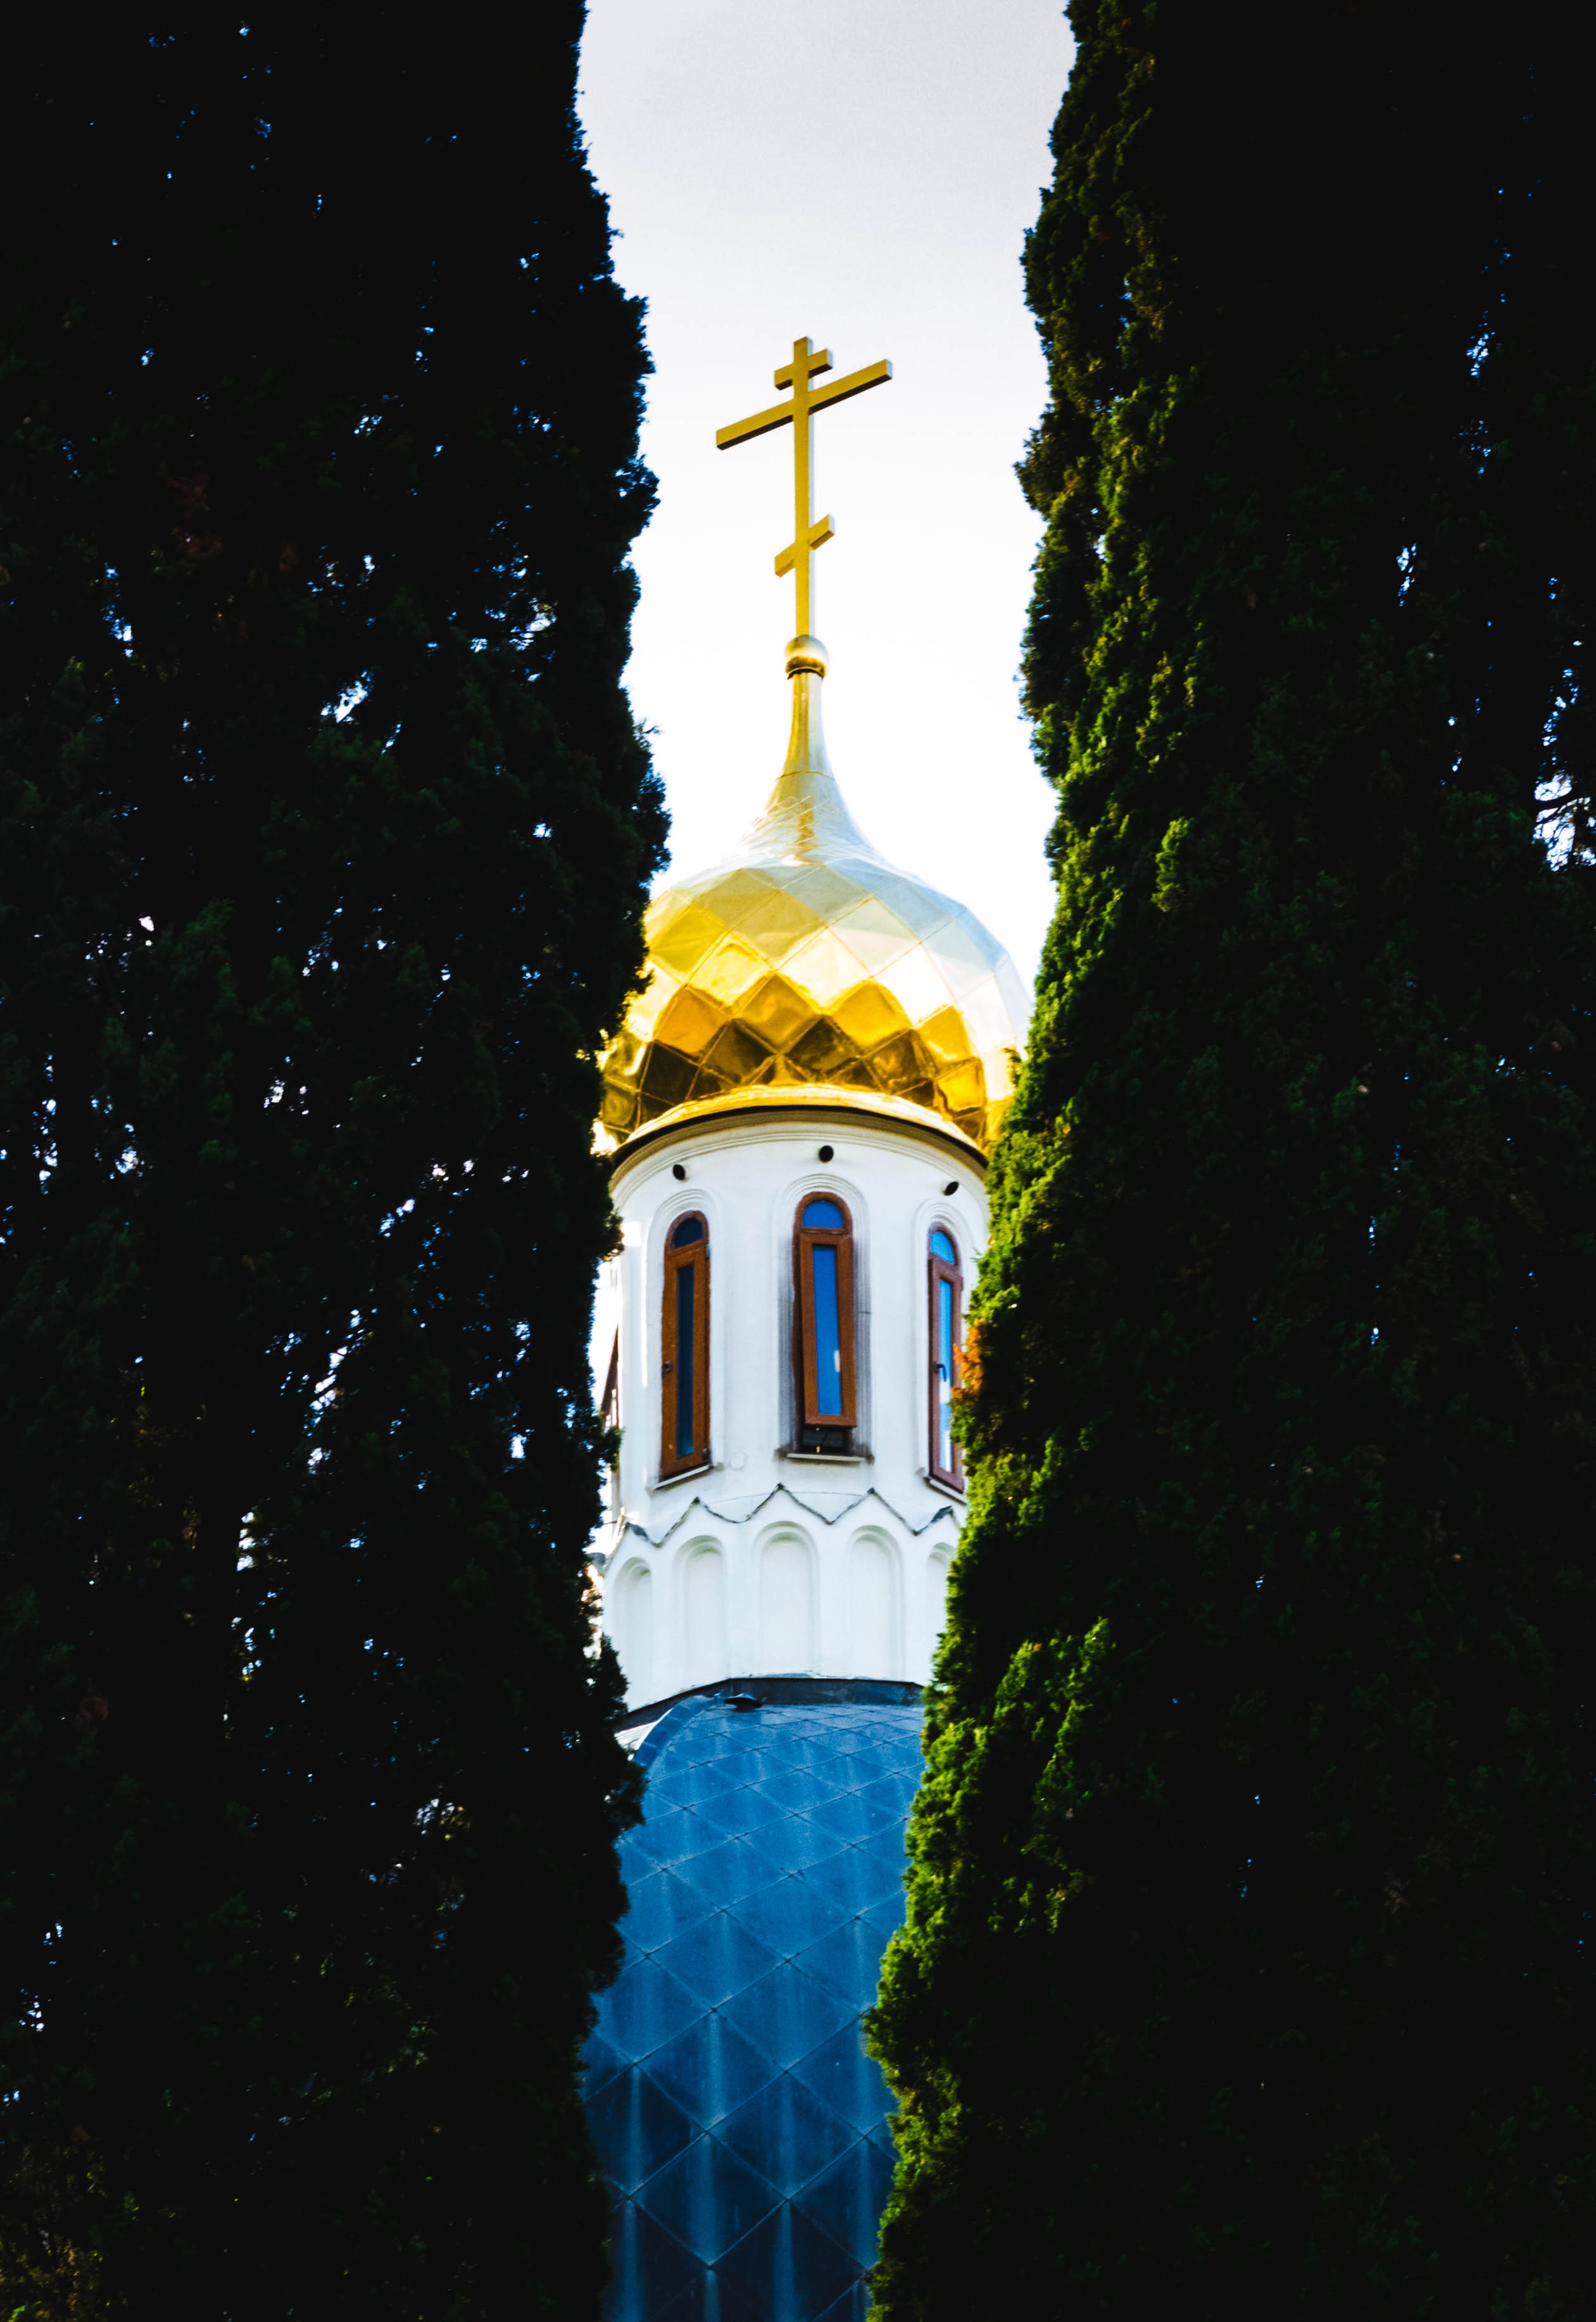 Photo of the Church Between Two Plants, Architecture, Religion, Travel, Traditional, HQ Photo